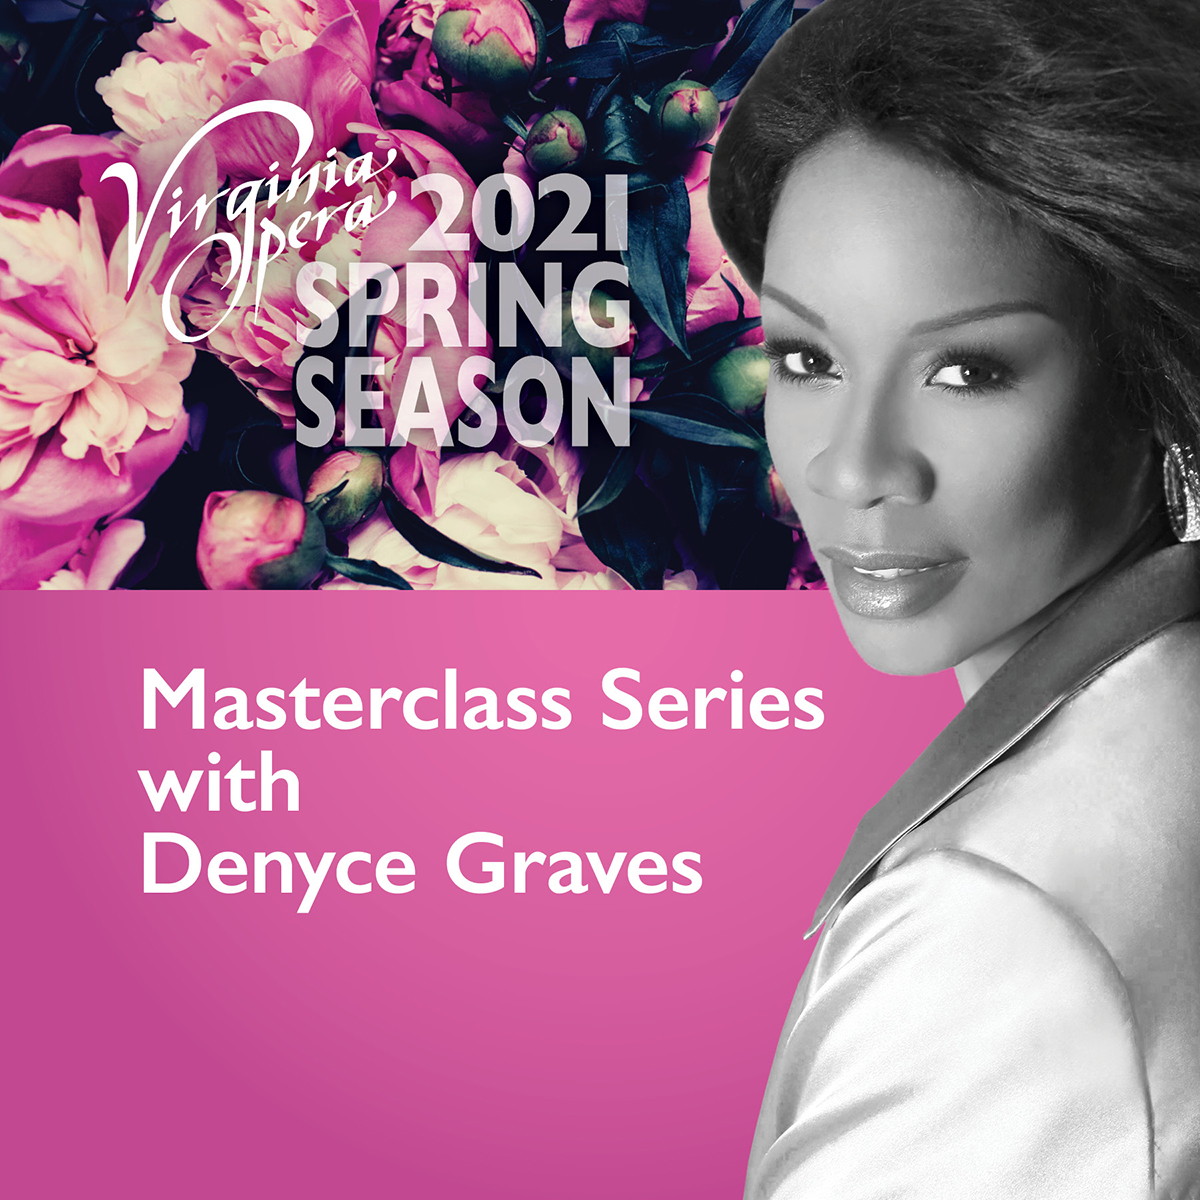 Masterclass Series with Denyce Graves